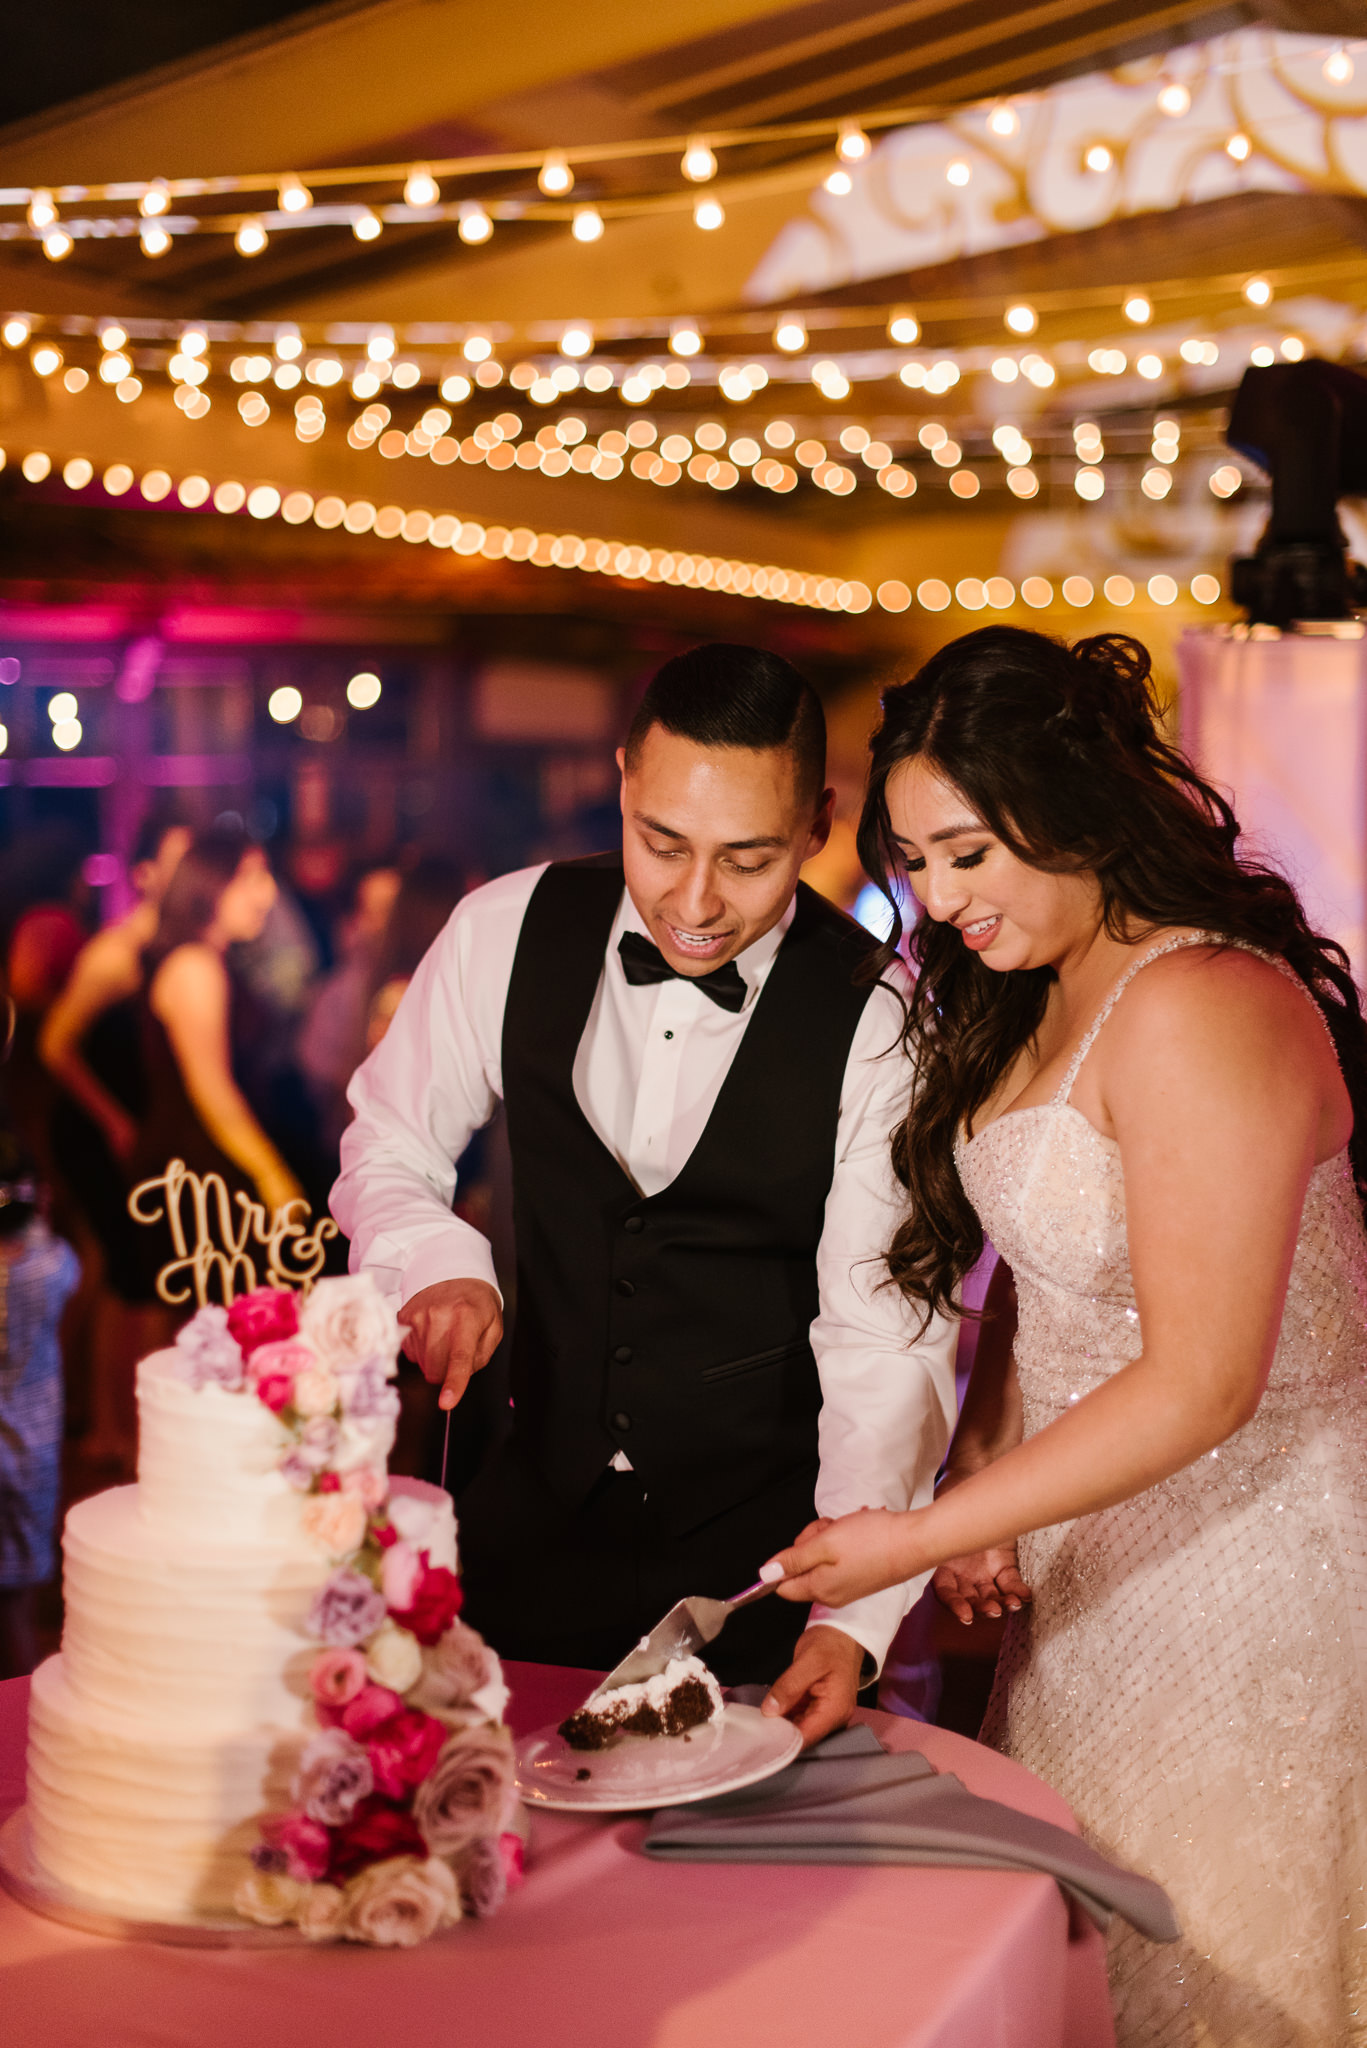 2019-04-05_Brittany_and_Nick_-_Married_-_San_Juan_Capistrano-154.jpg